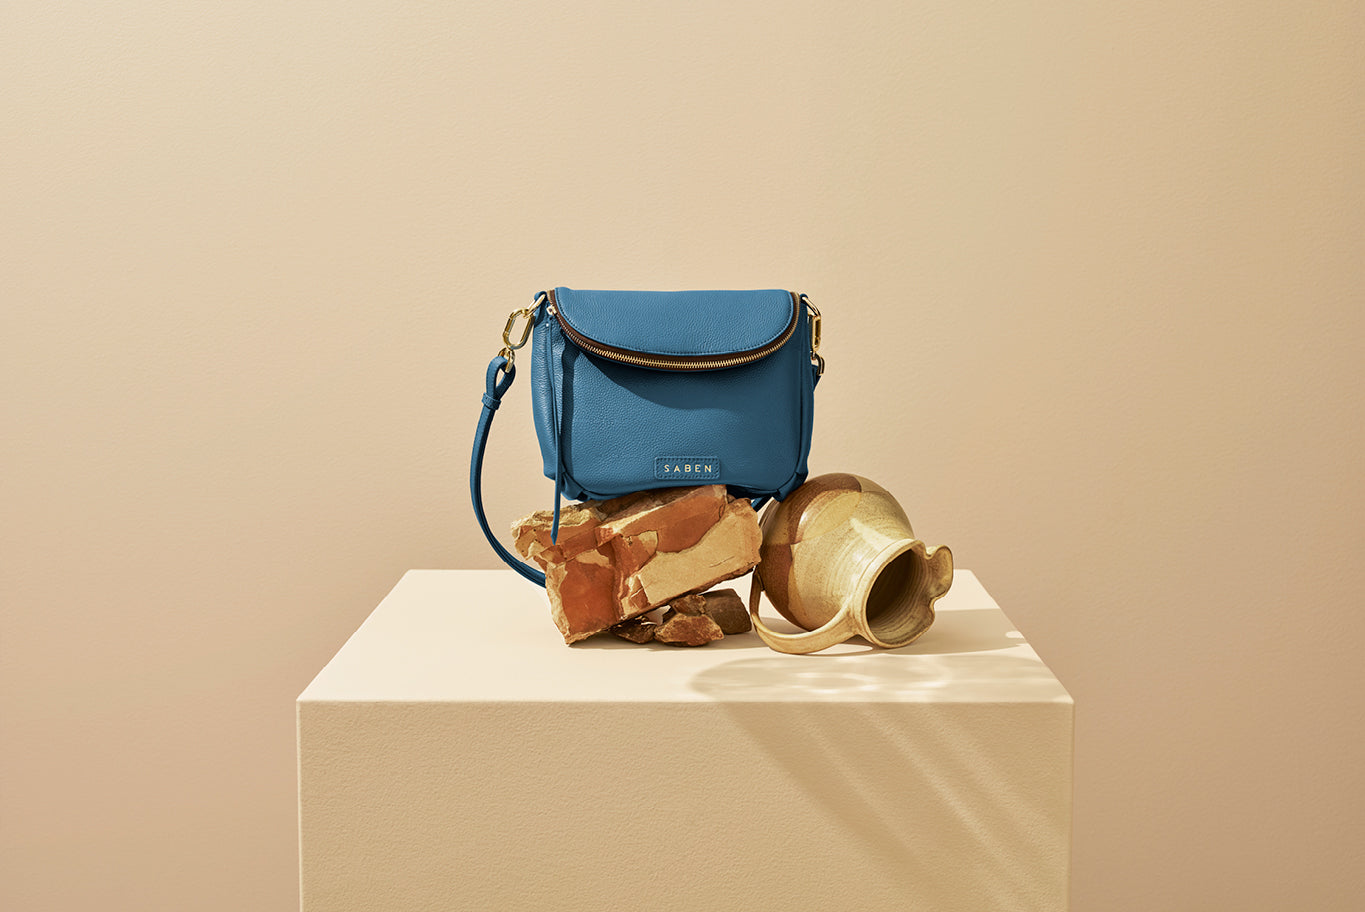 Saben SS20 Vessel collection Fifi handbag Aegean styled by karlya smith photographed by belinda merrie